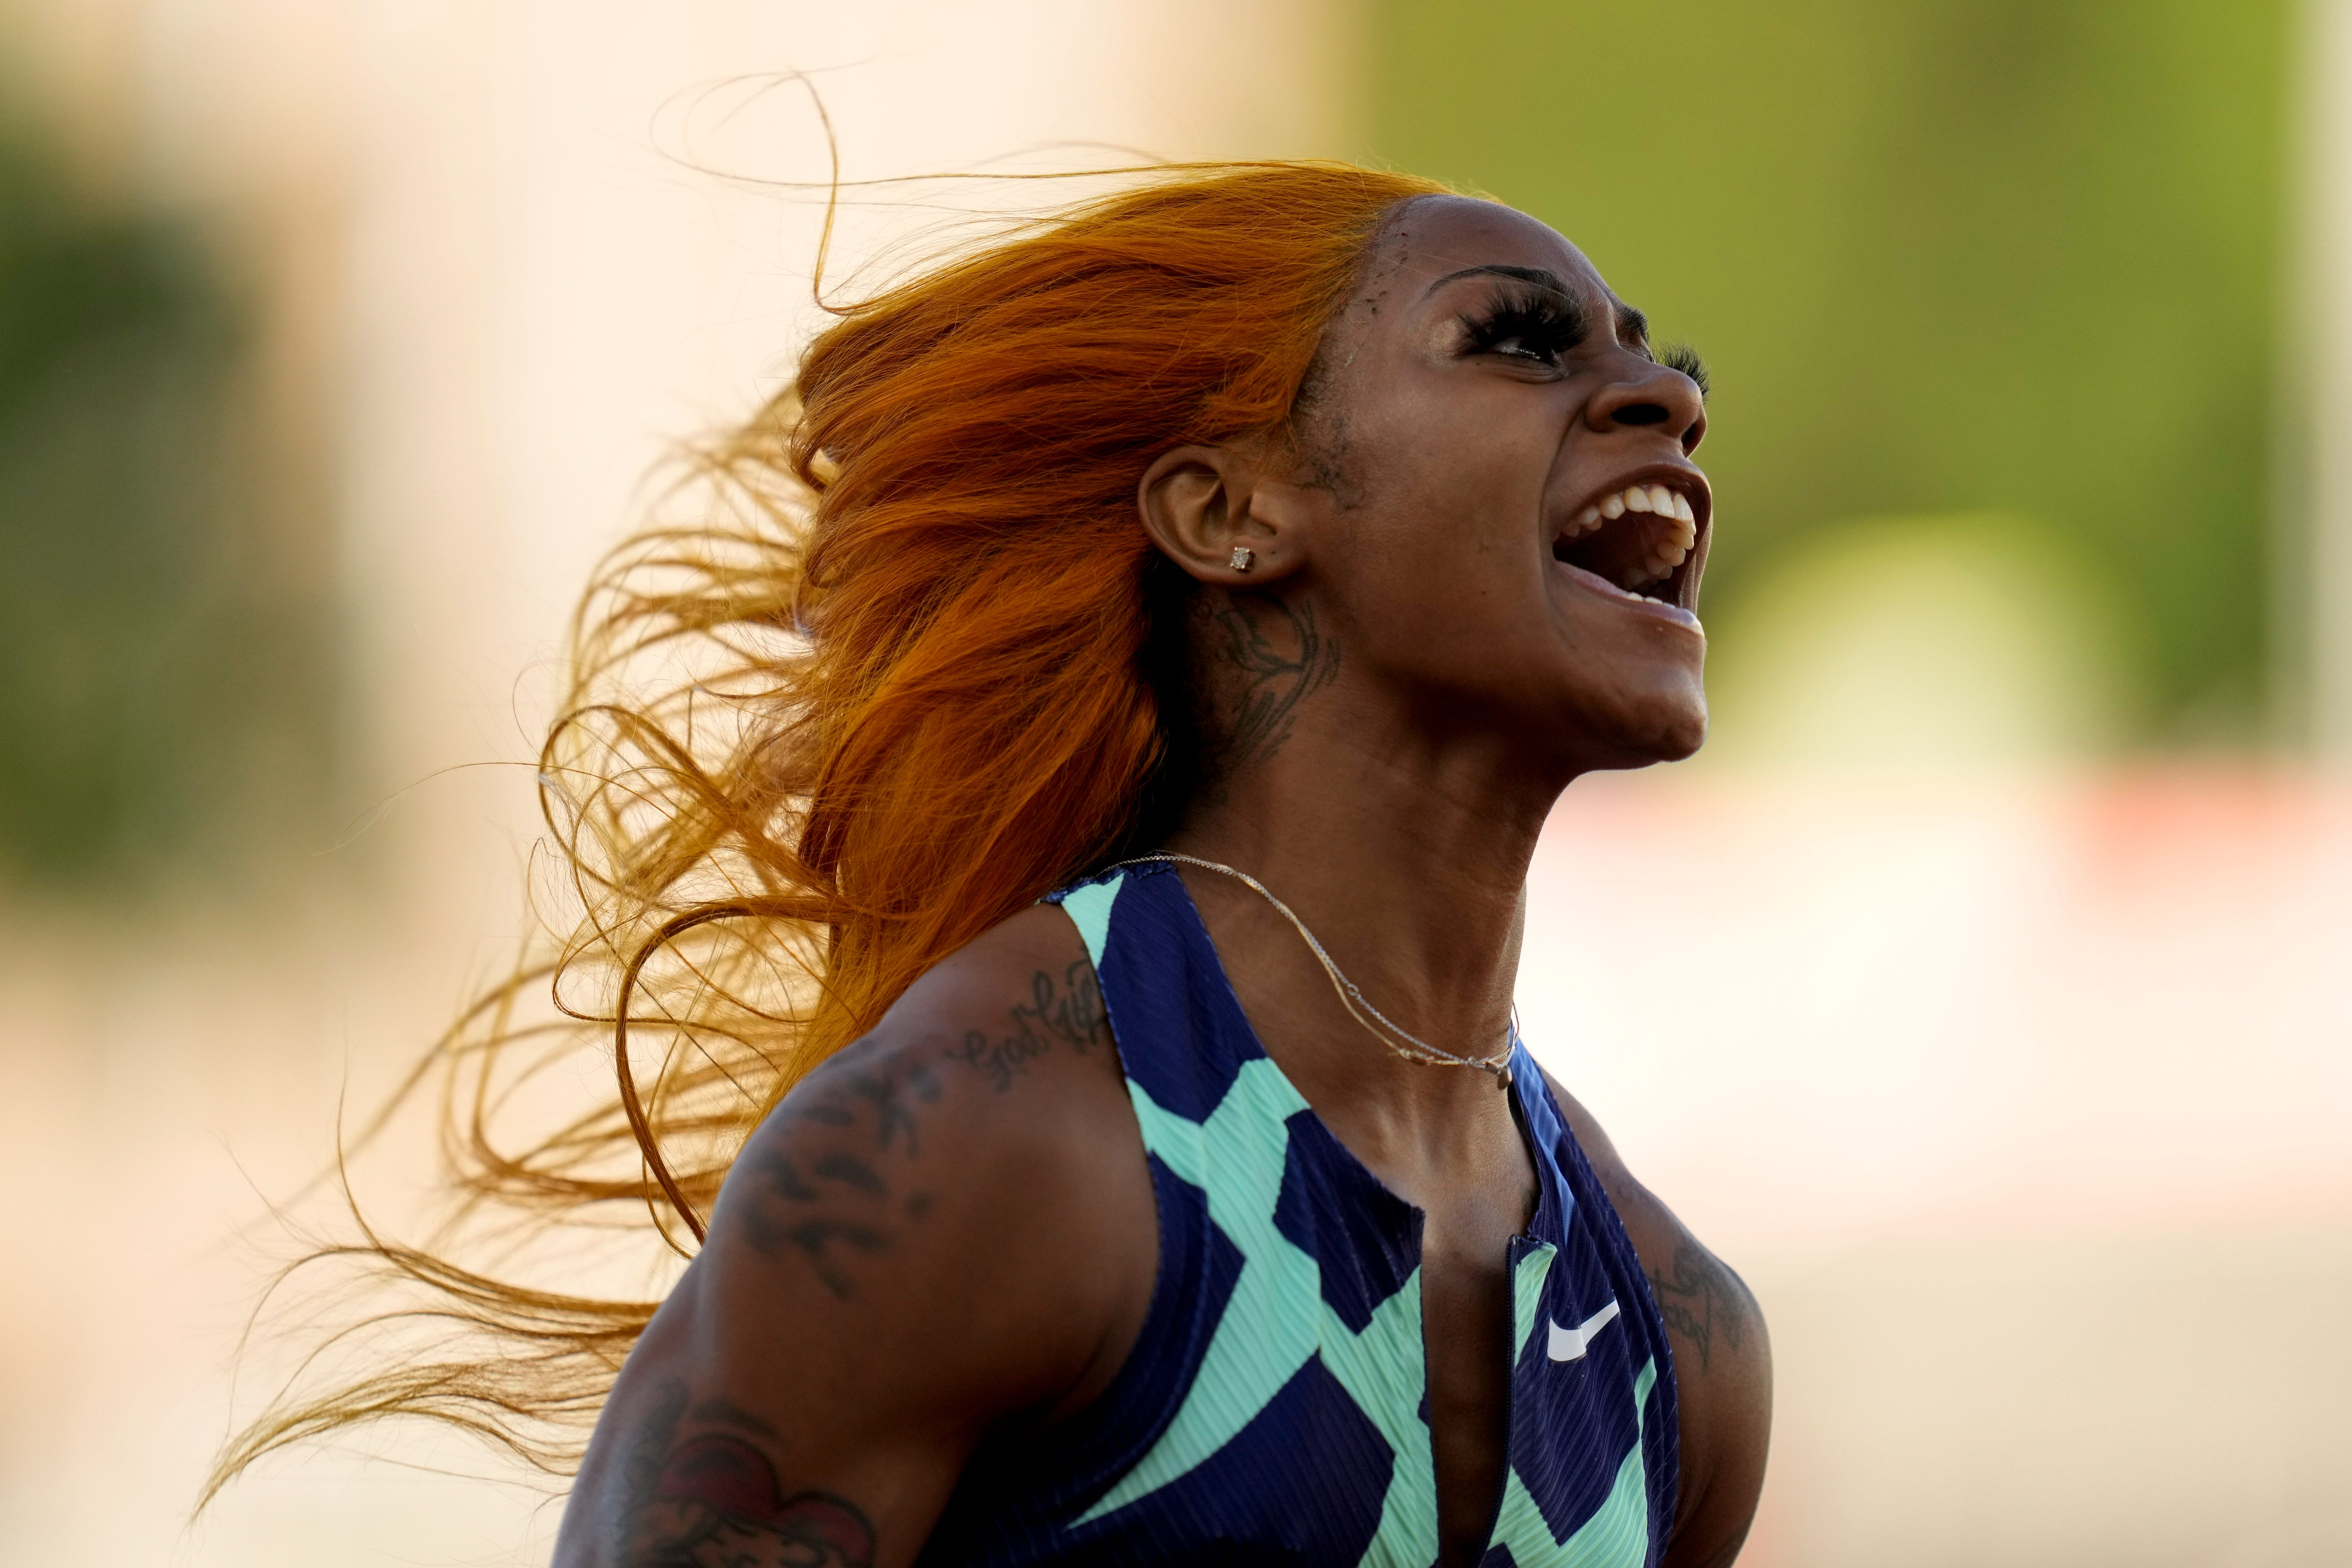 Sha Carri Richardson dominates 100 meters in style to clinch trip to Tokyo Olympics